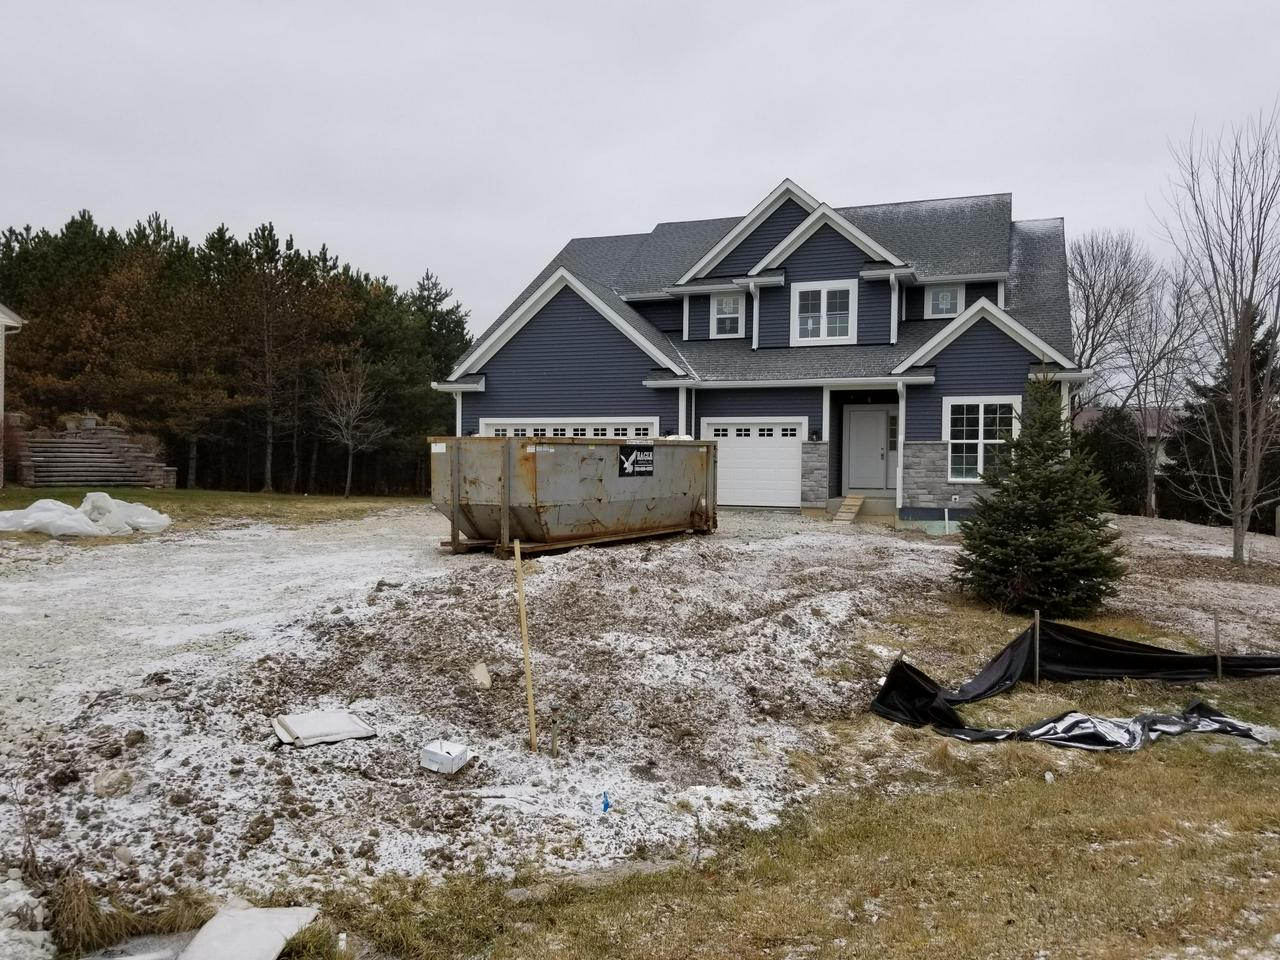 NEW CONSTRUCTION.  4 Bedrm, 2.5 Bath.  Granite tops throughout, Hardwood Floors, Tile Walk-in Shower, Nice finishes. Beautiful location on secluded lot in Cul-de-sac. To be completed early 2019.